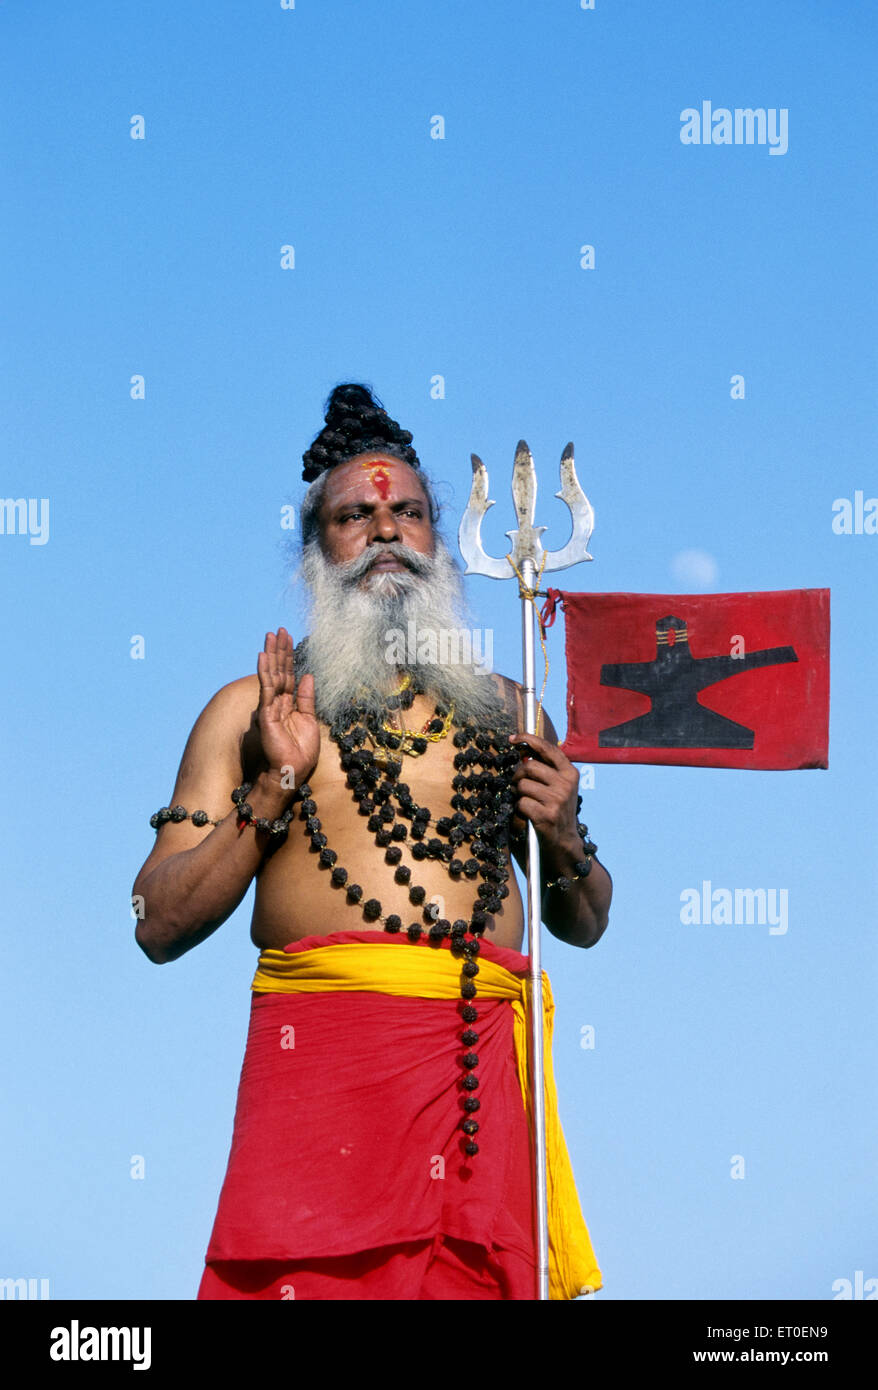 Sadhu in blessing posture holding trident ; Thanjavur ; Tanjore ; Tamil Nadu ; India MR#777A Stock Photo